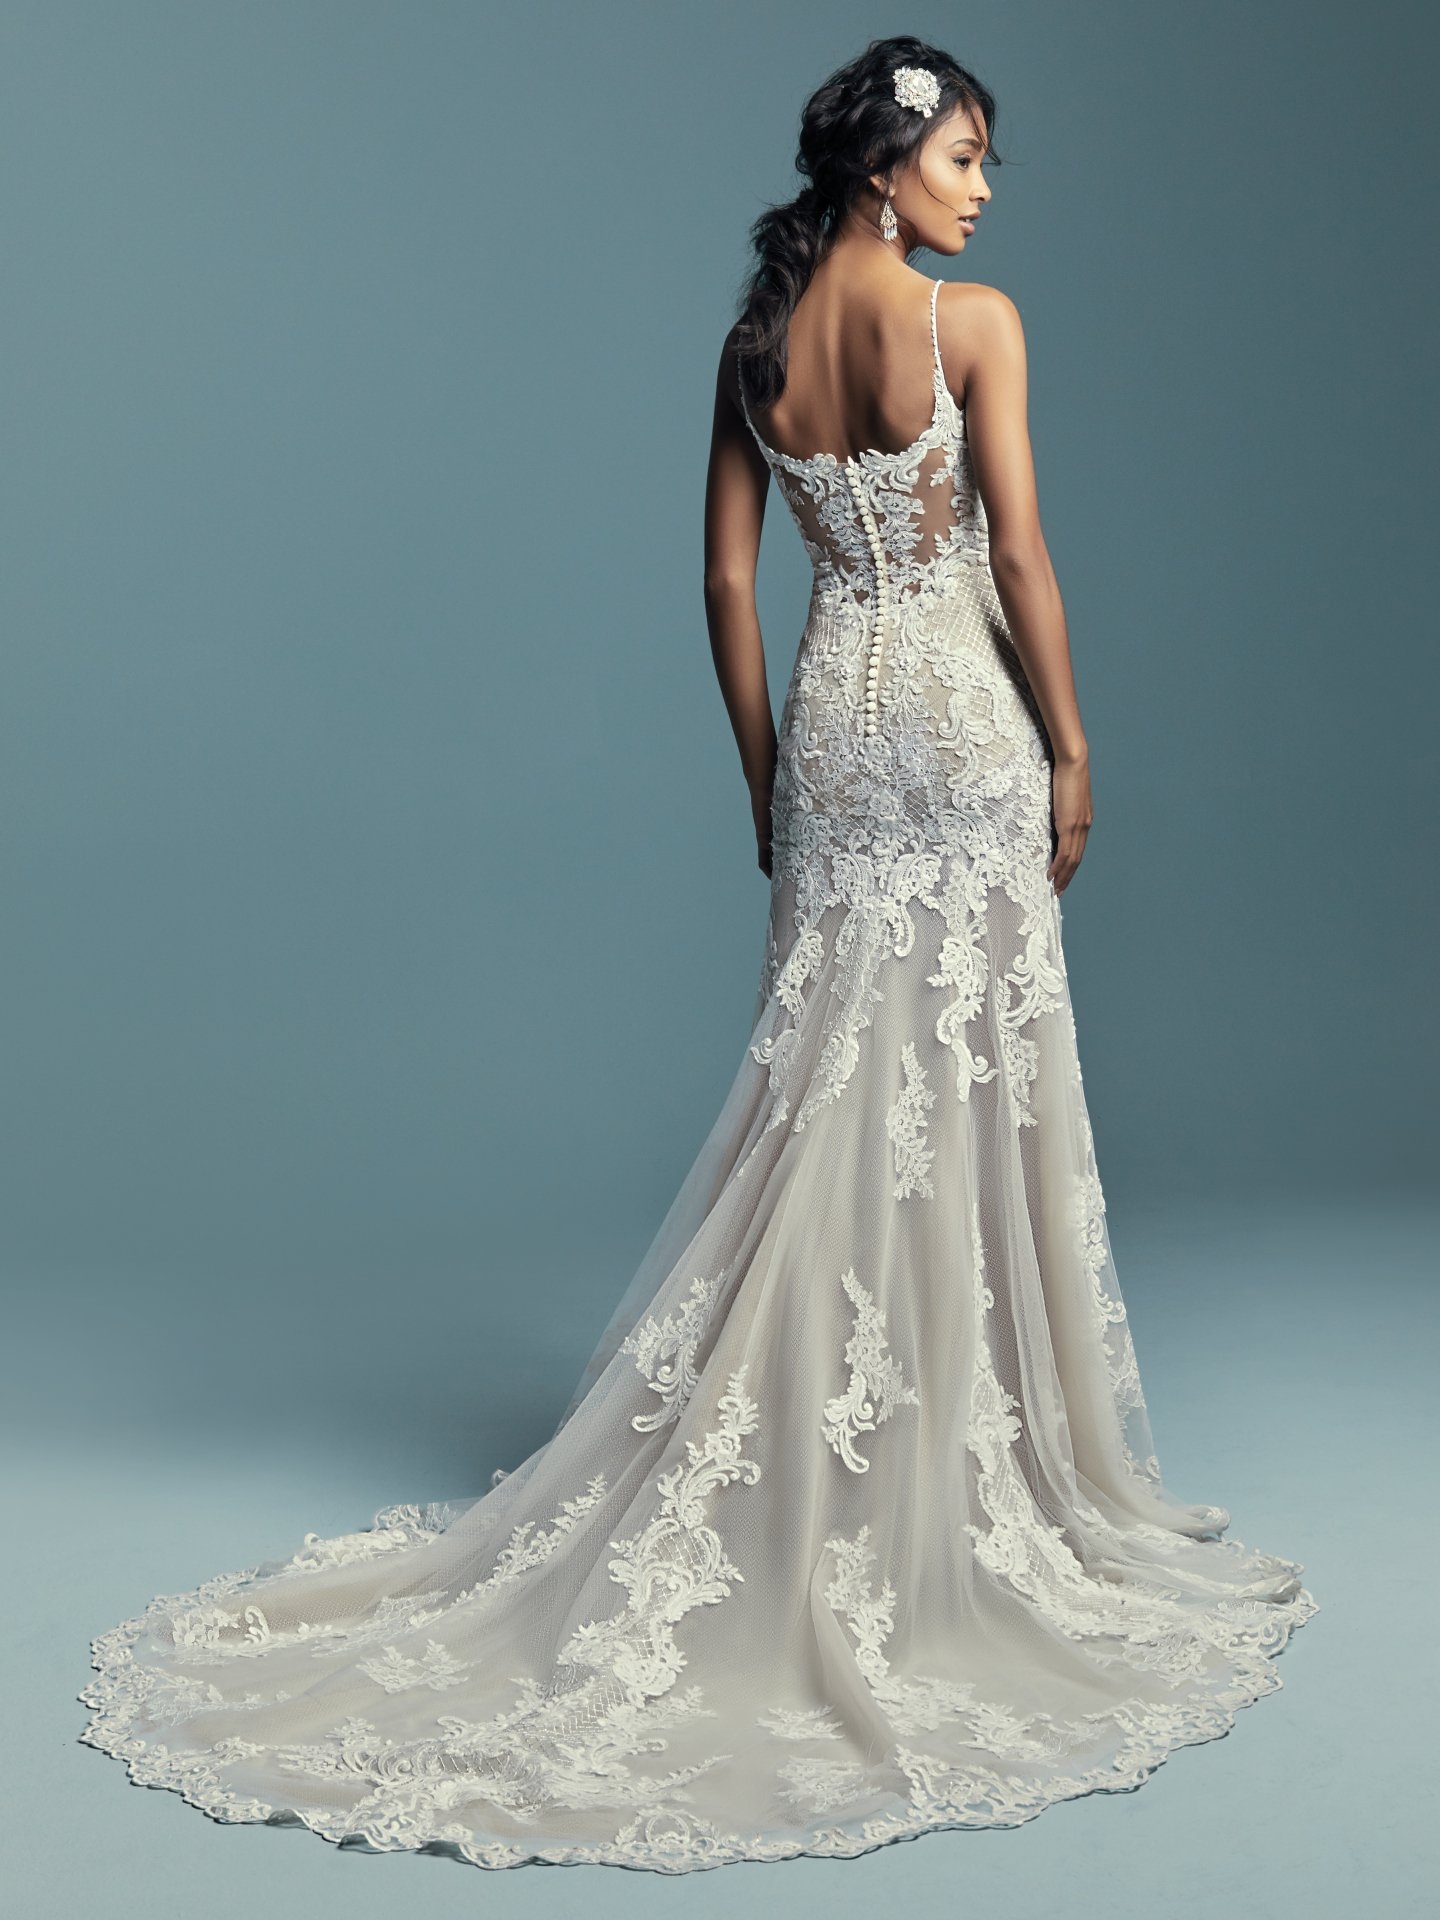 Spaghetti Strap Plunging Sweetheart Neckline Beaded Lace